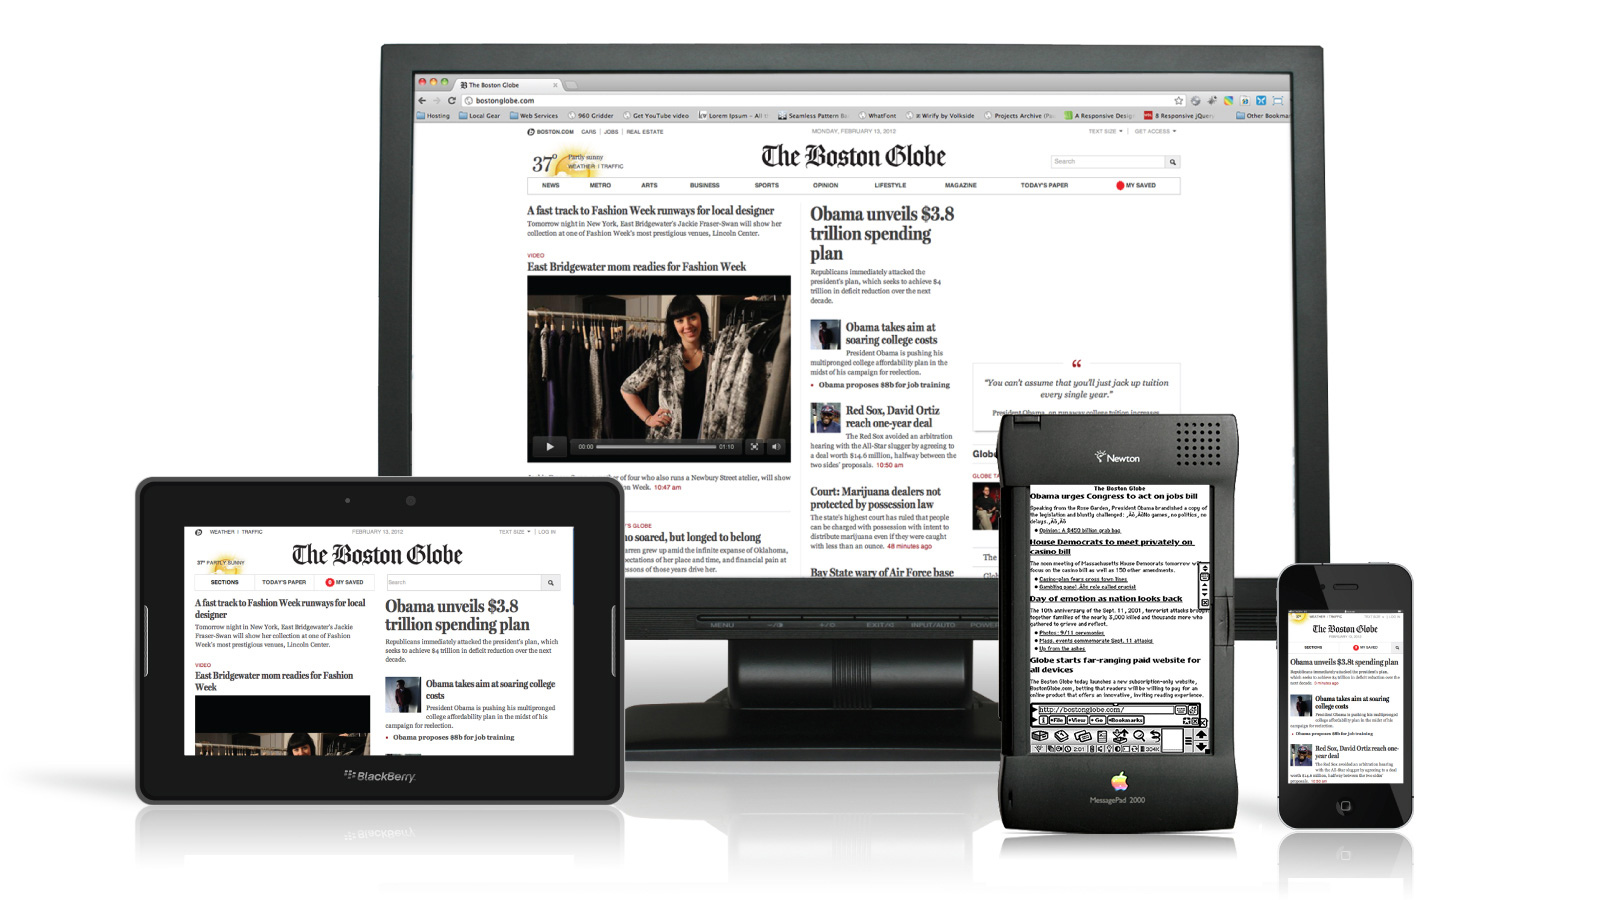 The Boston Globe responsive website anno 2011